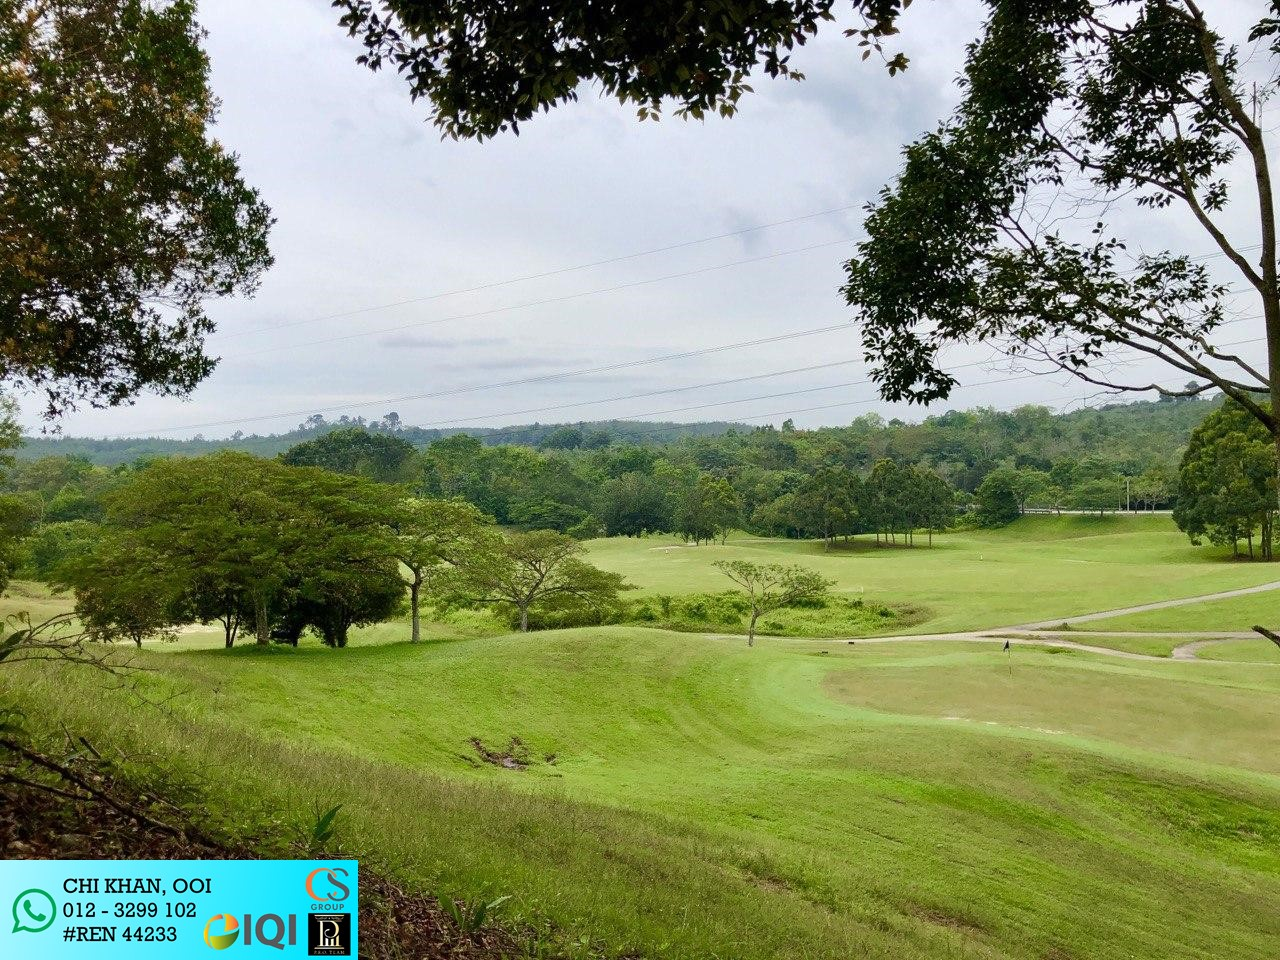 LEMBAH BERINGIN GOLF COURSE | BUNGALOW LAND FOR SALE @ RM500,000 (nego)